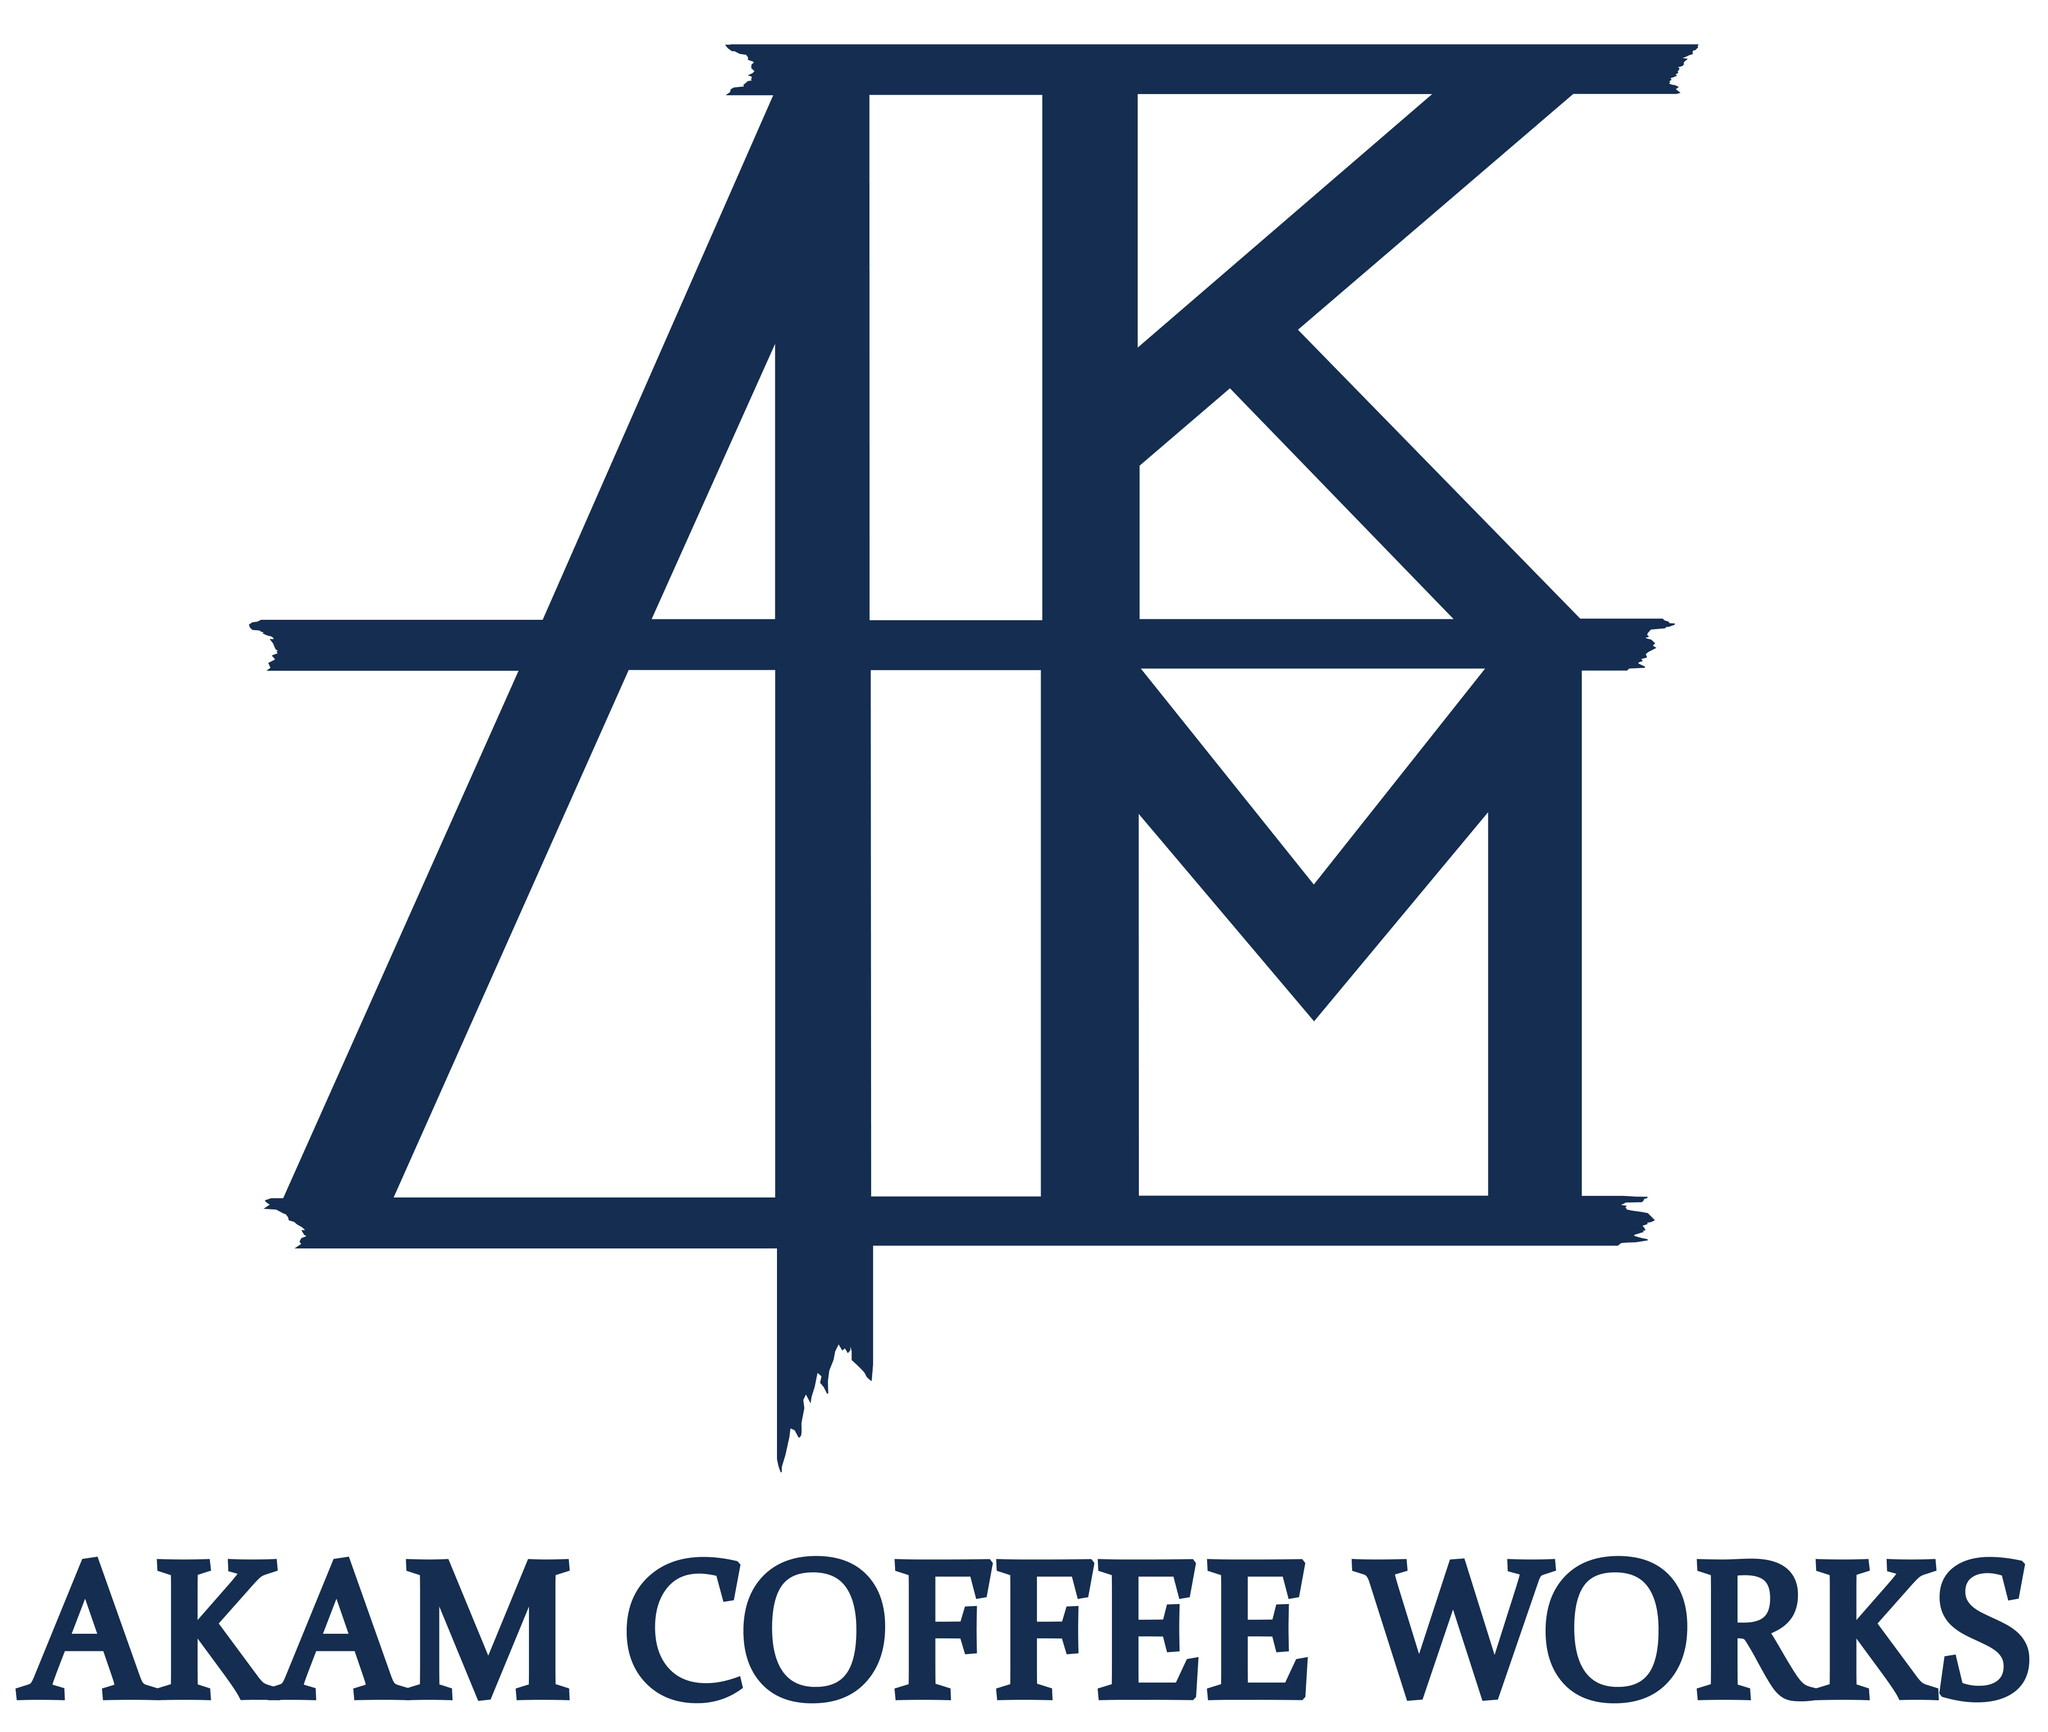 AKAM COFFEE WORKS アーカムコーヒーワークス